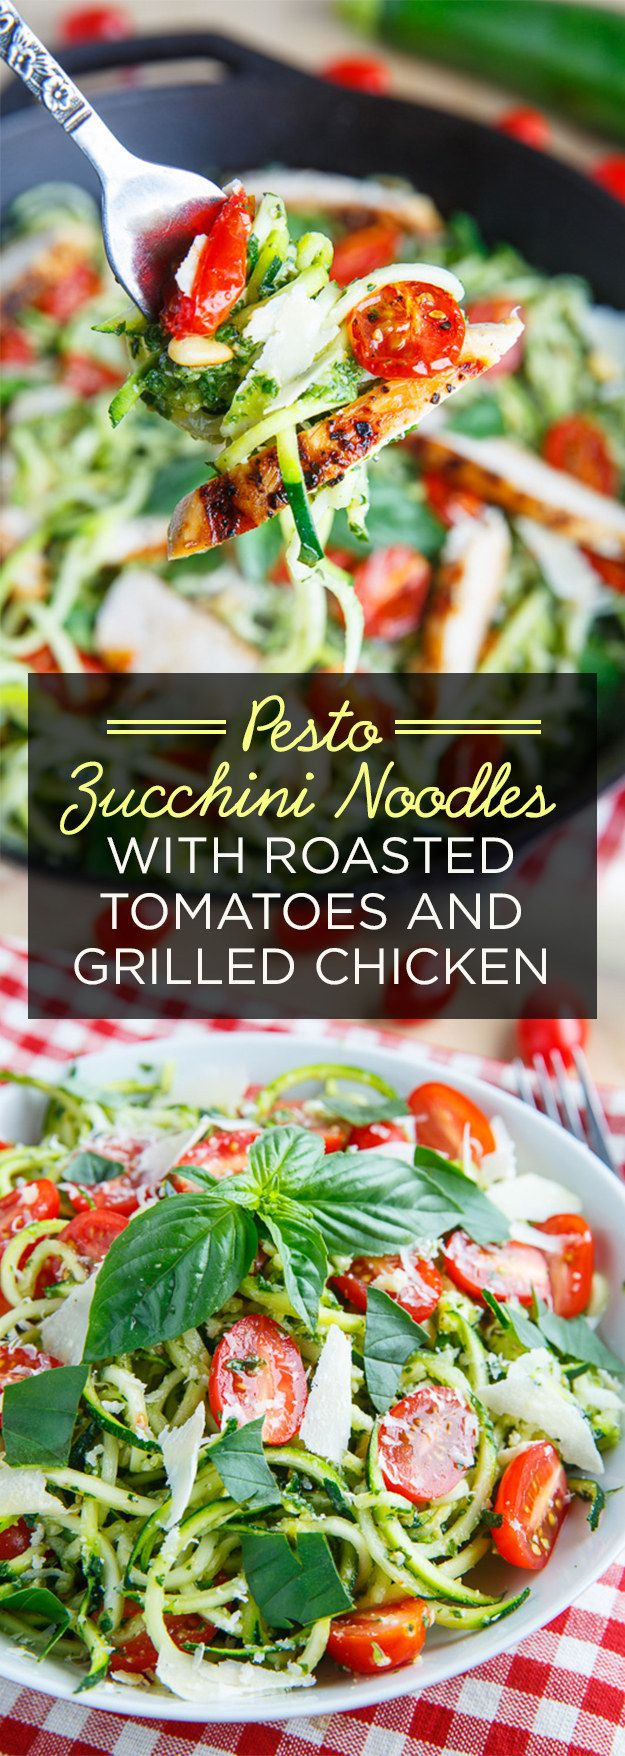 Pesto Zucchini Noodles with Roasted Tomatoes and Grilled Chicken | 7 Delicious Dinners For Your Busy Week